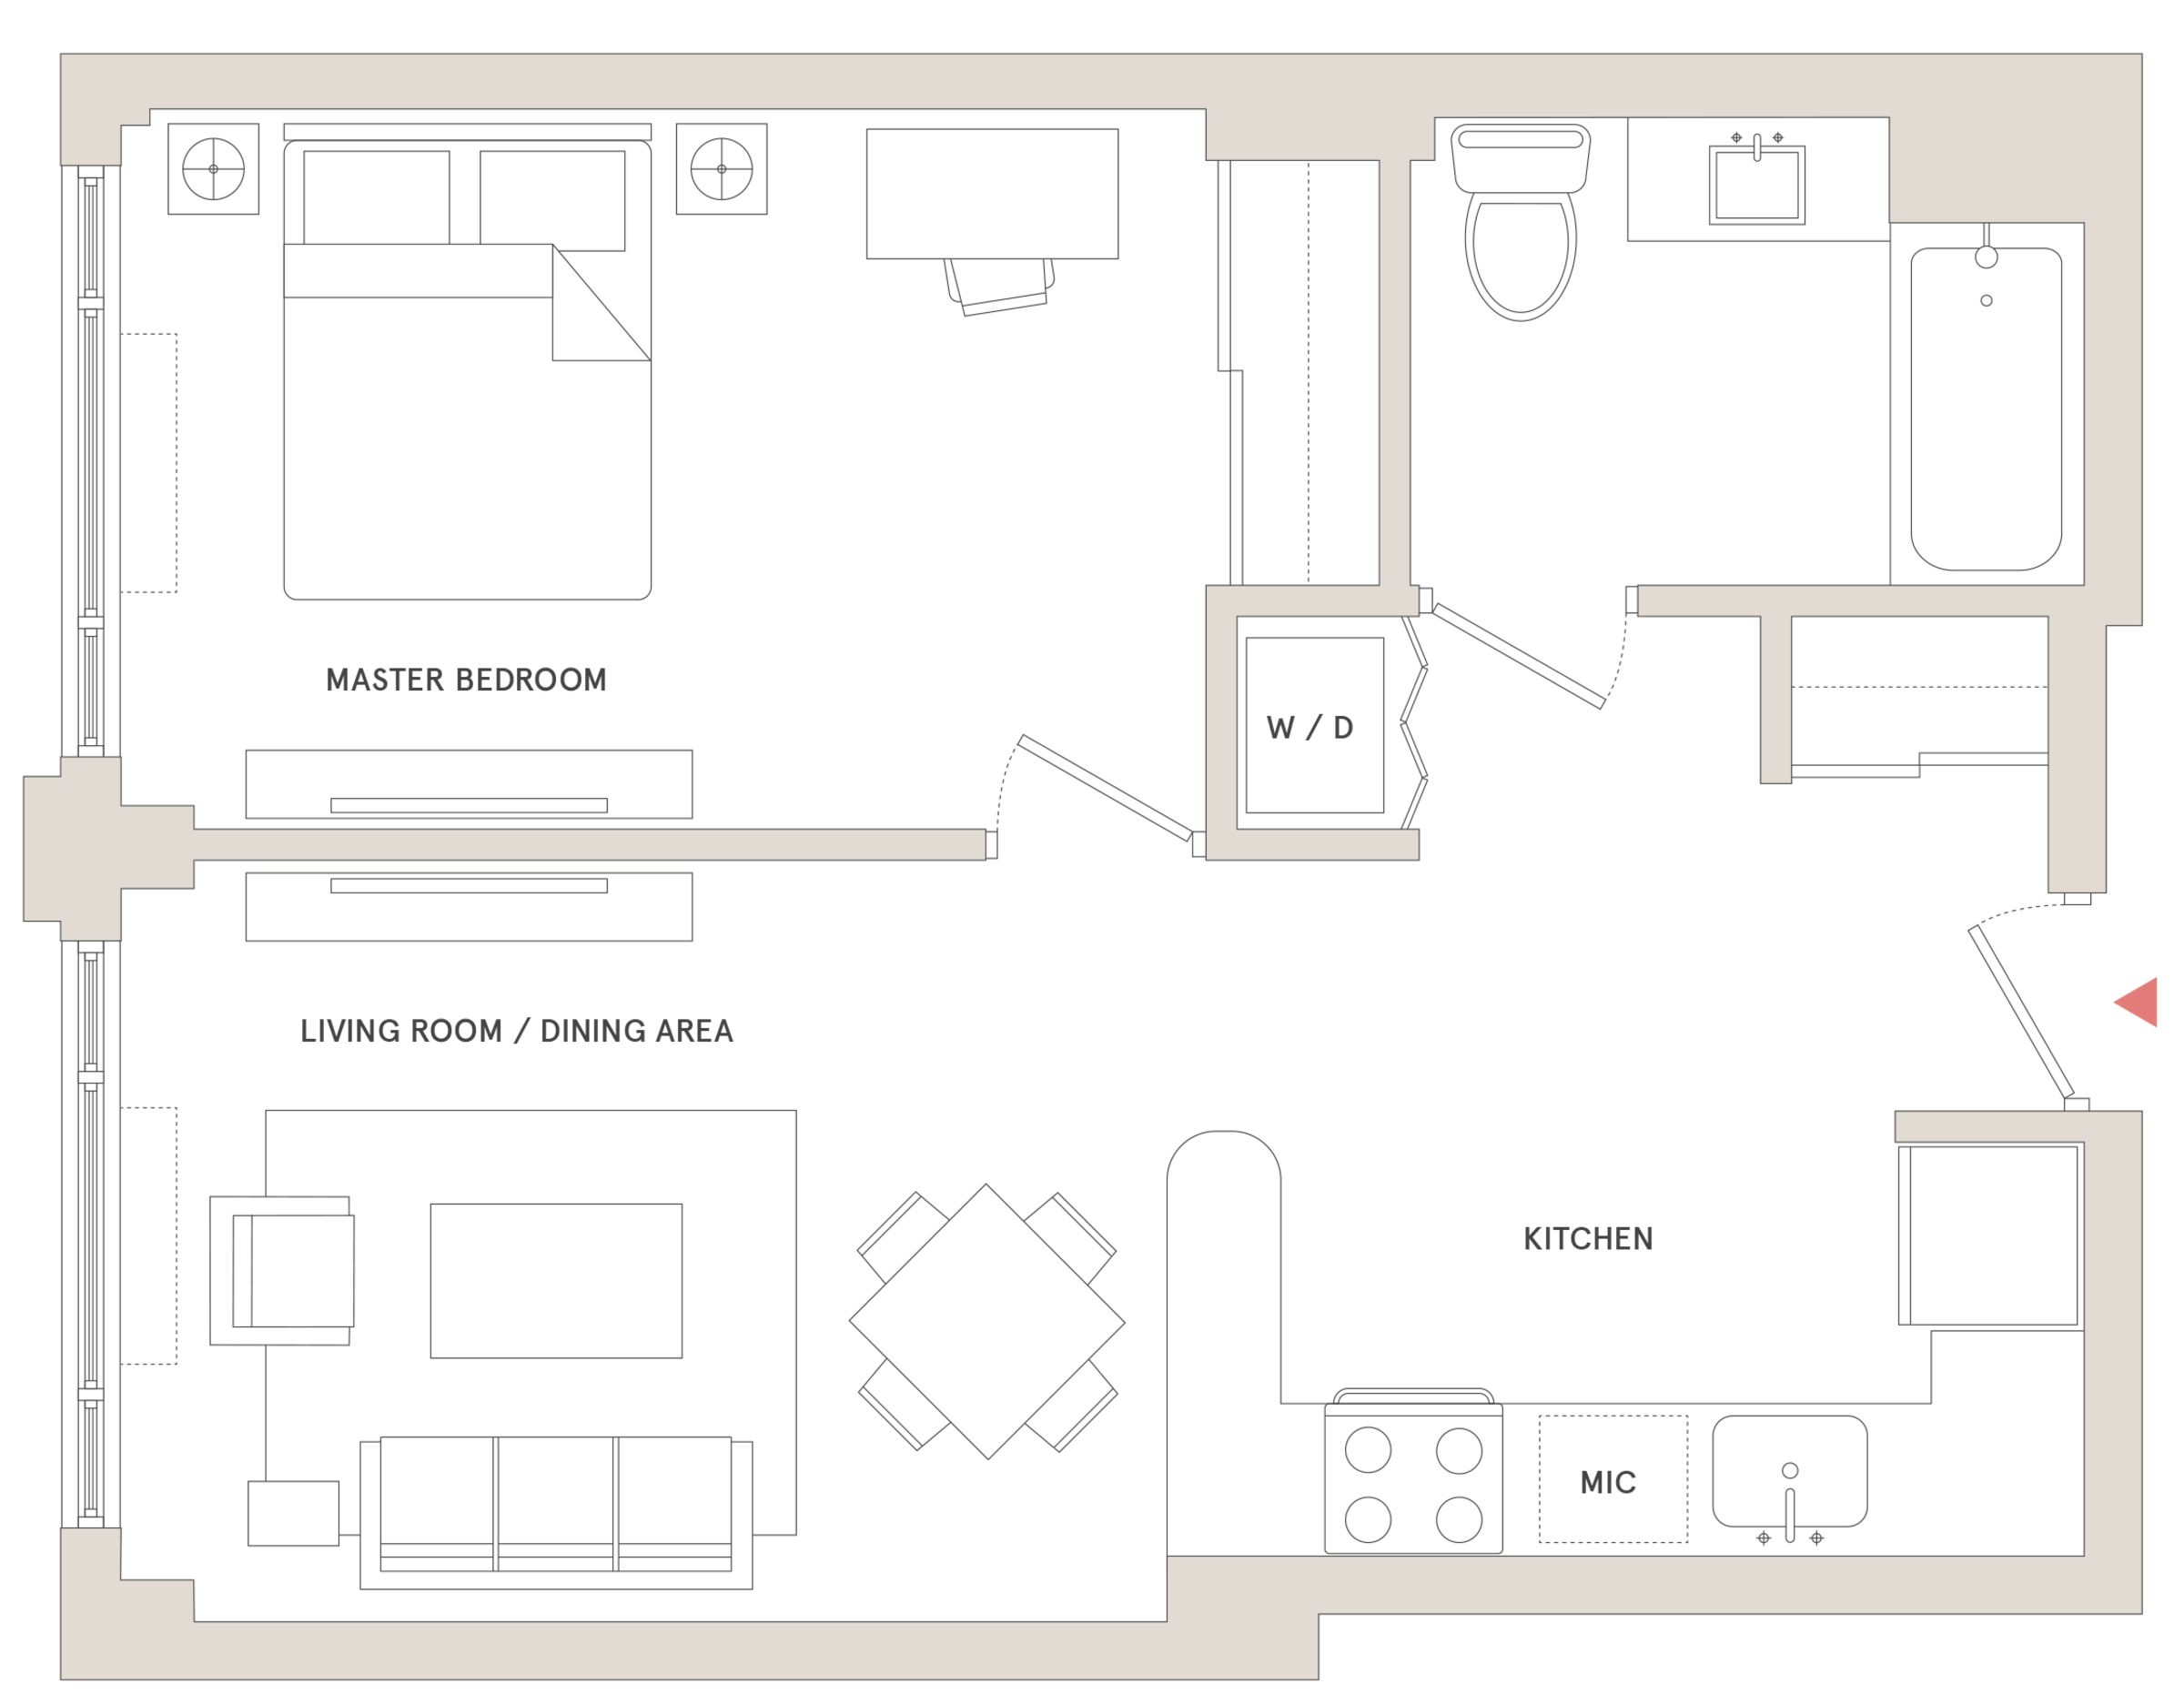 Full screen 181fs floorplans 170922 2f 3 6e